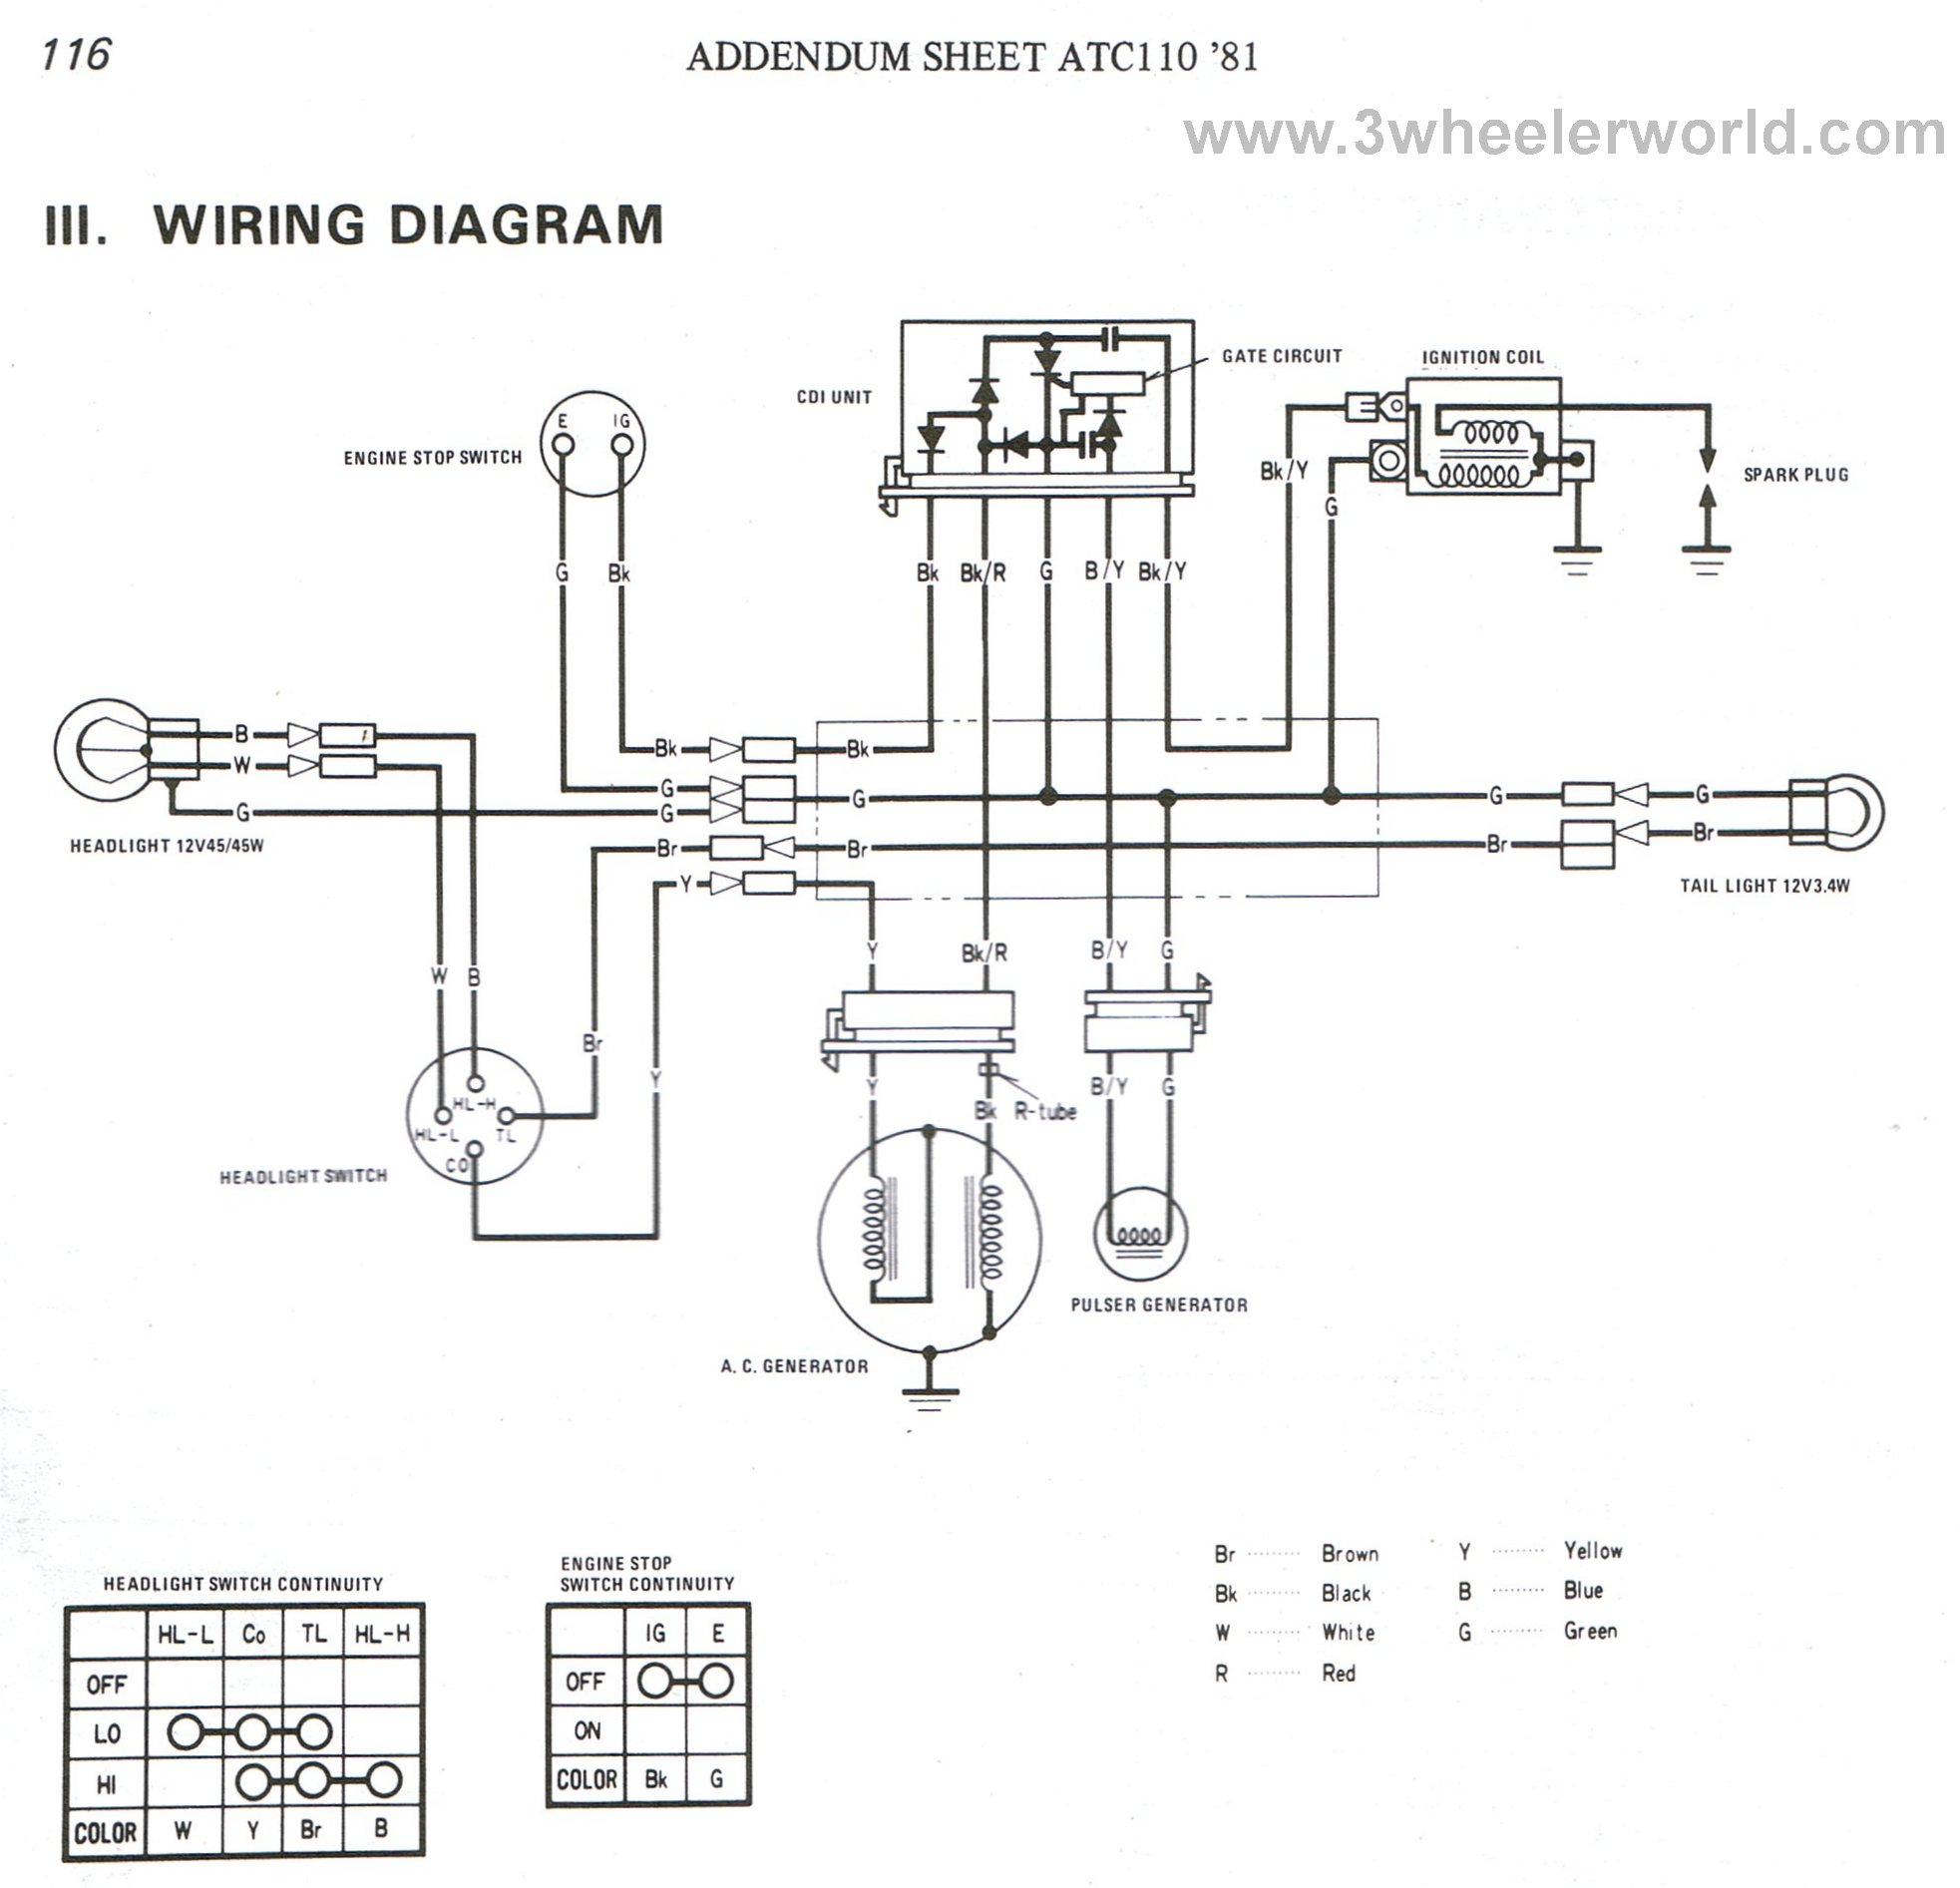 hight resolution of honda 3 wheeler wiring harness wiring diagram schematics 91 honda stereo wiring honda 185s wiring diagram